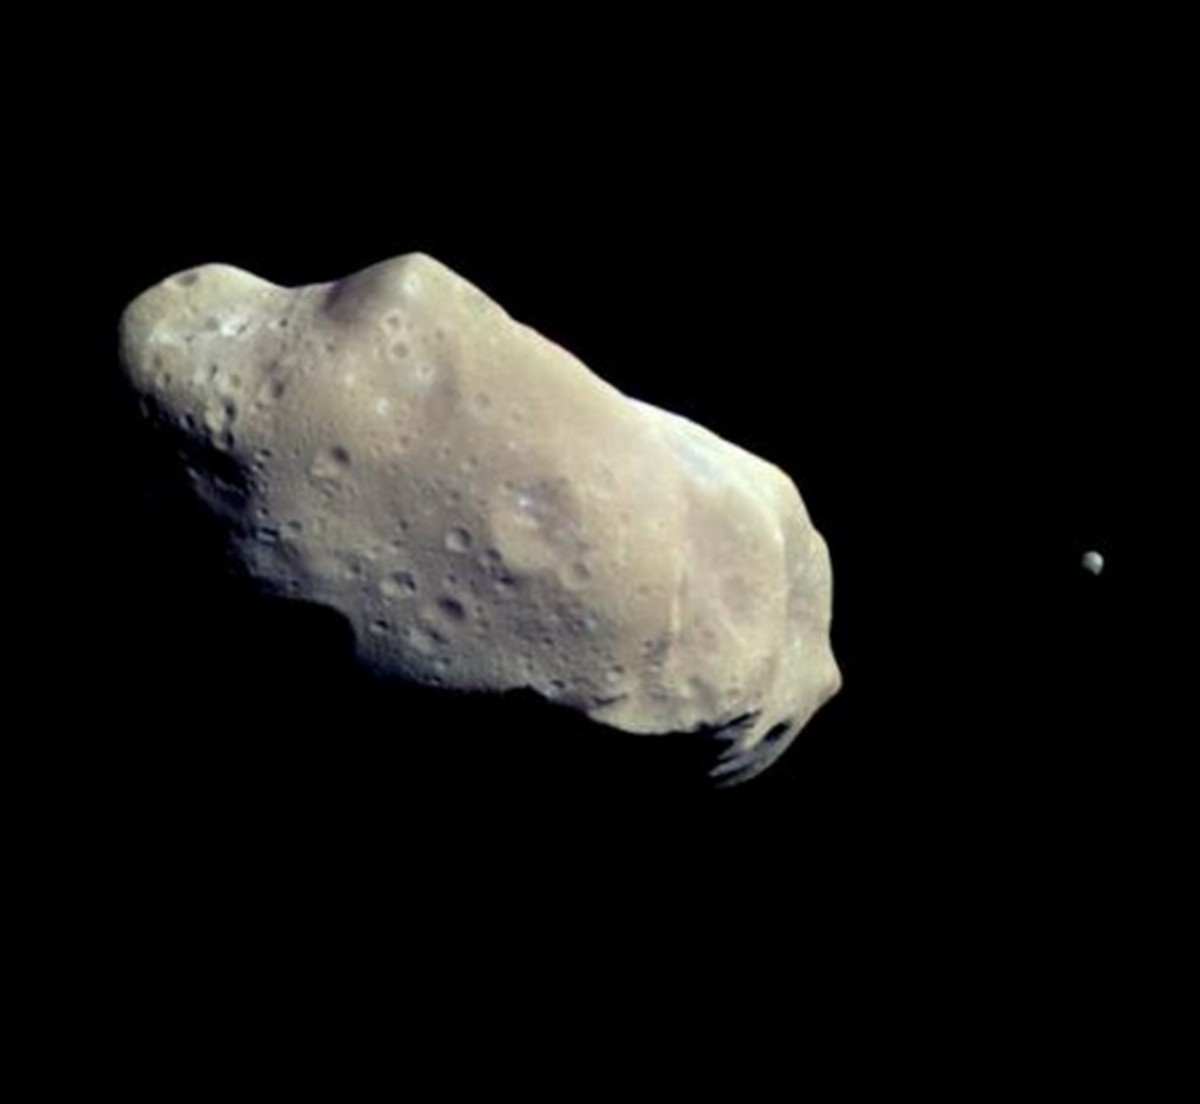 Ida is the large asteroid — 36 x 14 miles — with little egg-shaped Dactyl (dot at right) 1 mile long.